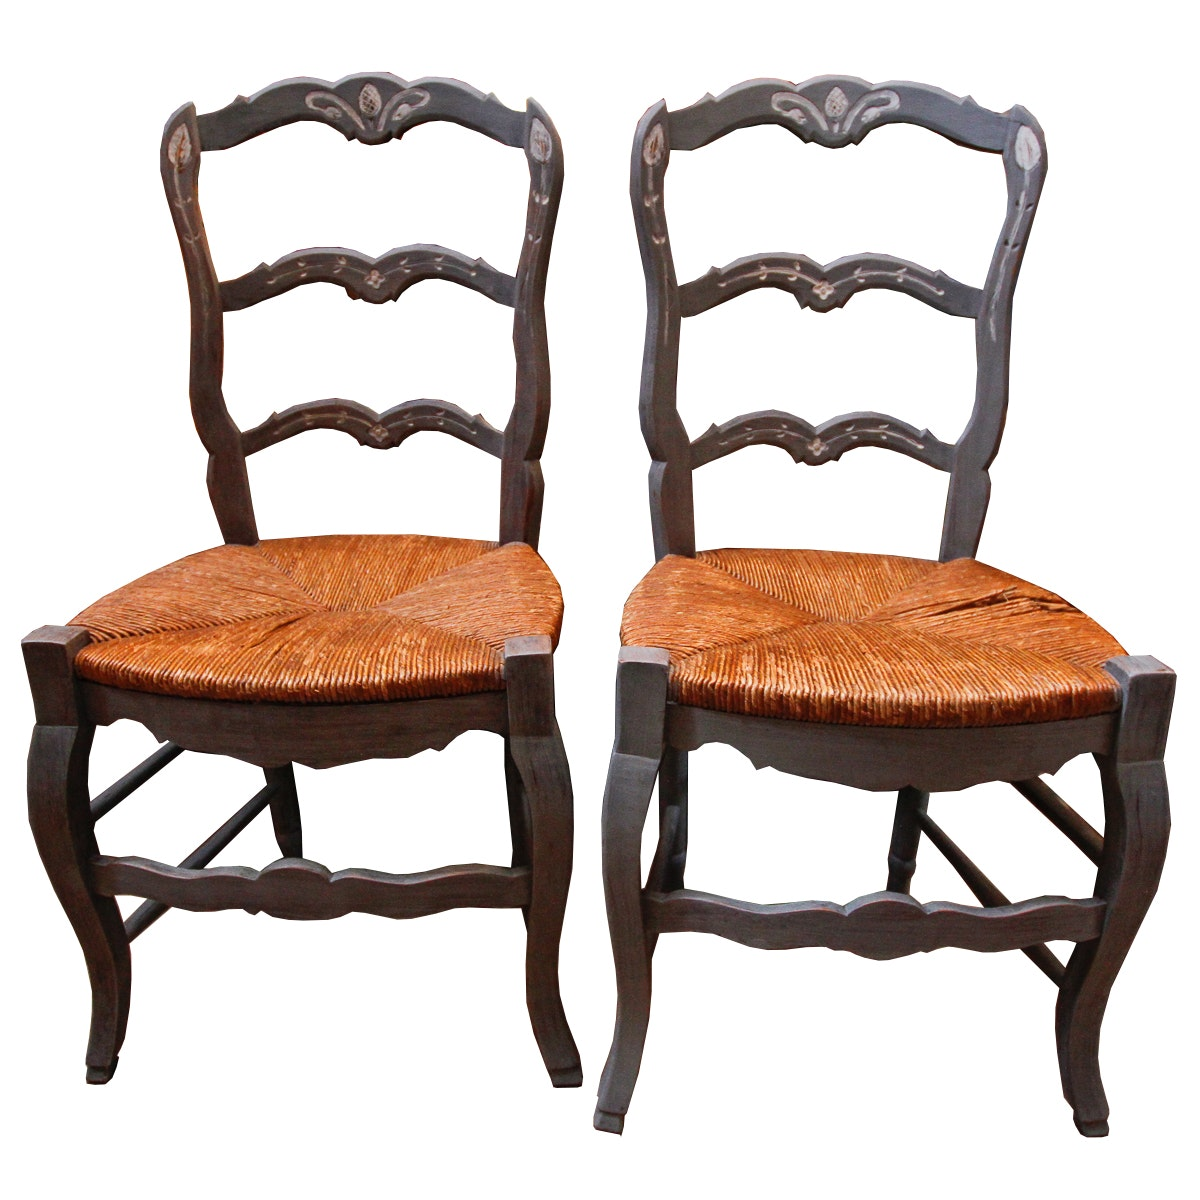 Two Painted Rush Seat Side Chairs